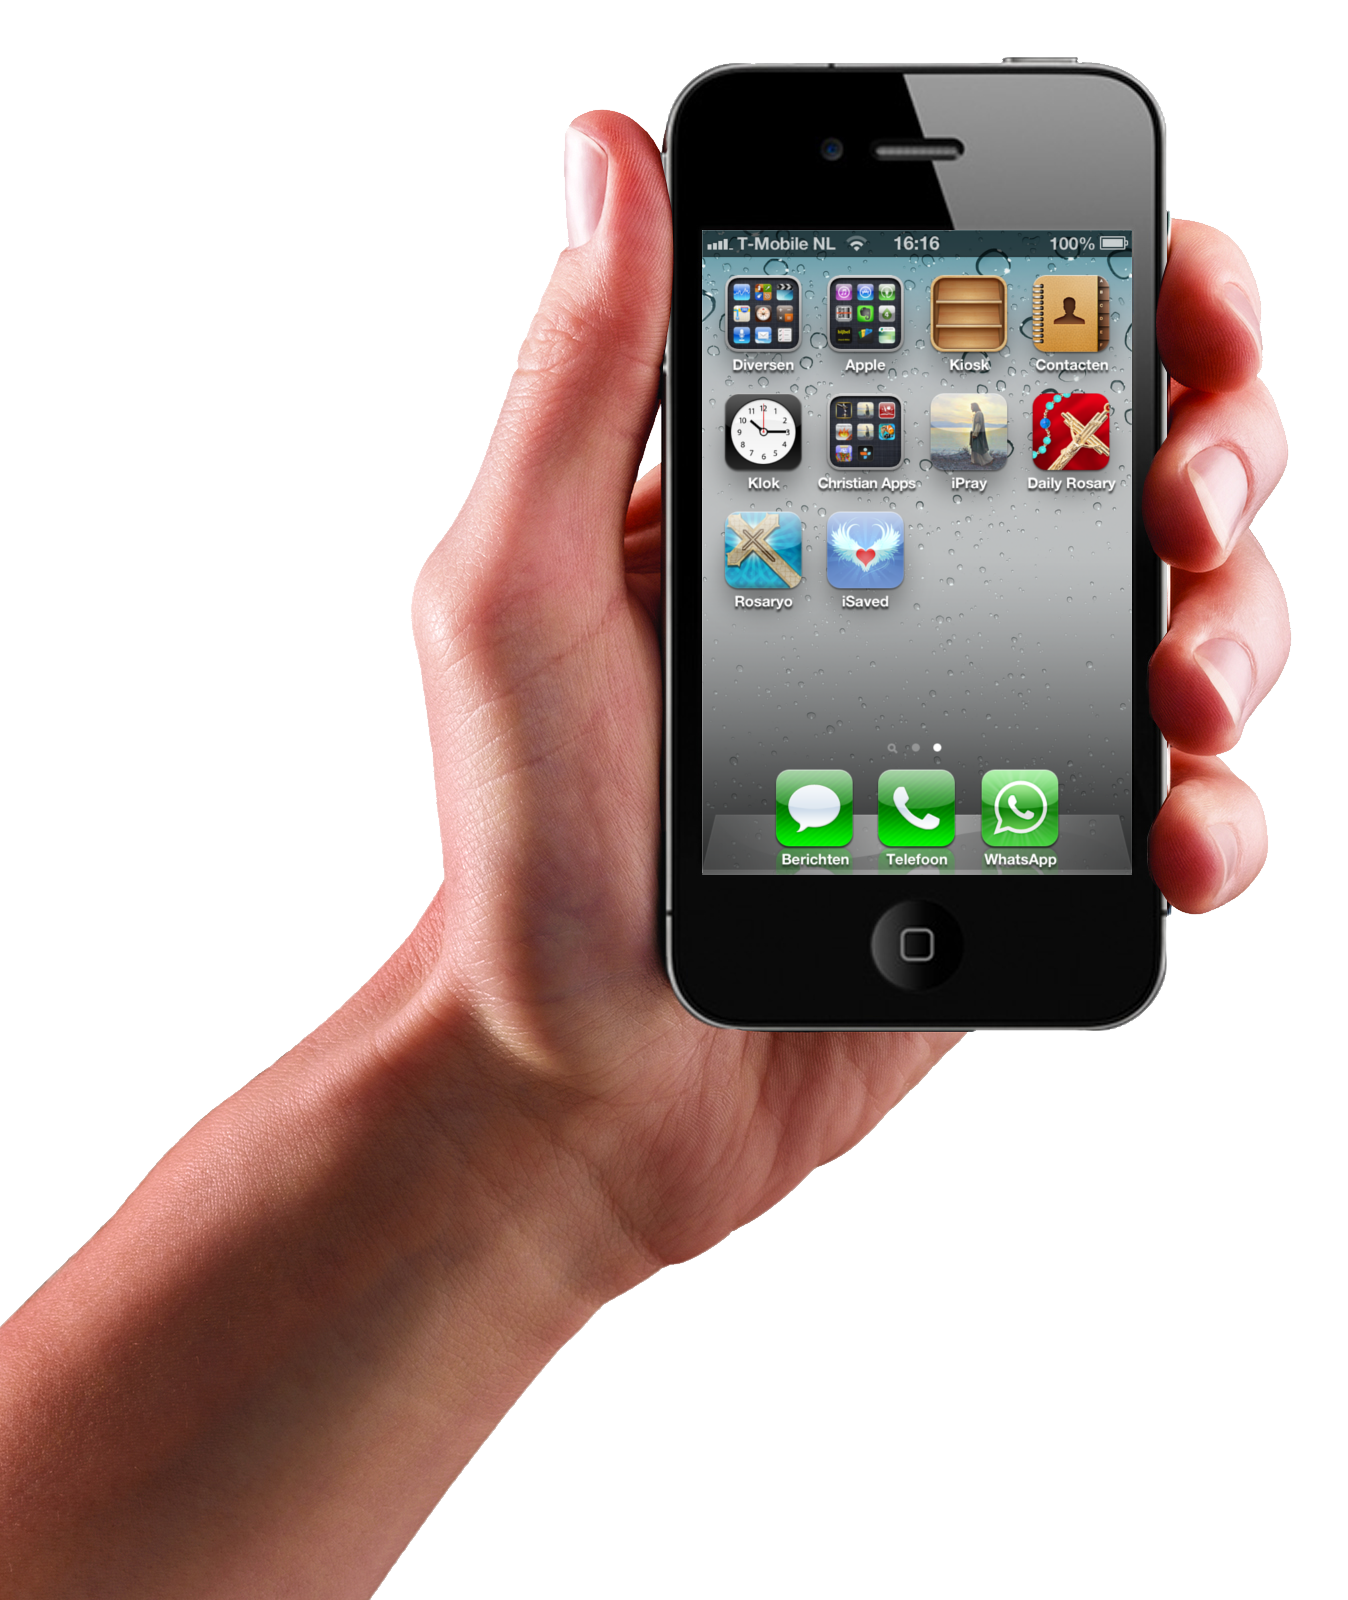 Android apple phone clipart image stock Iphone Apple PNG images free download image stock